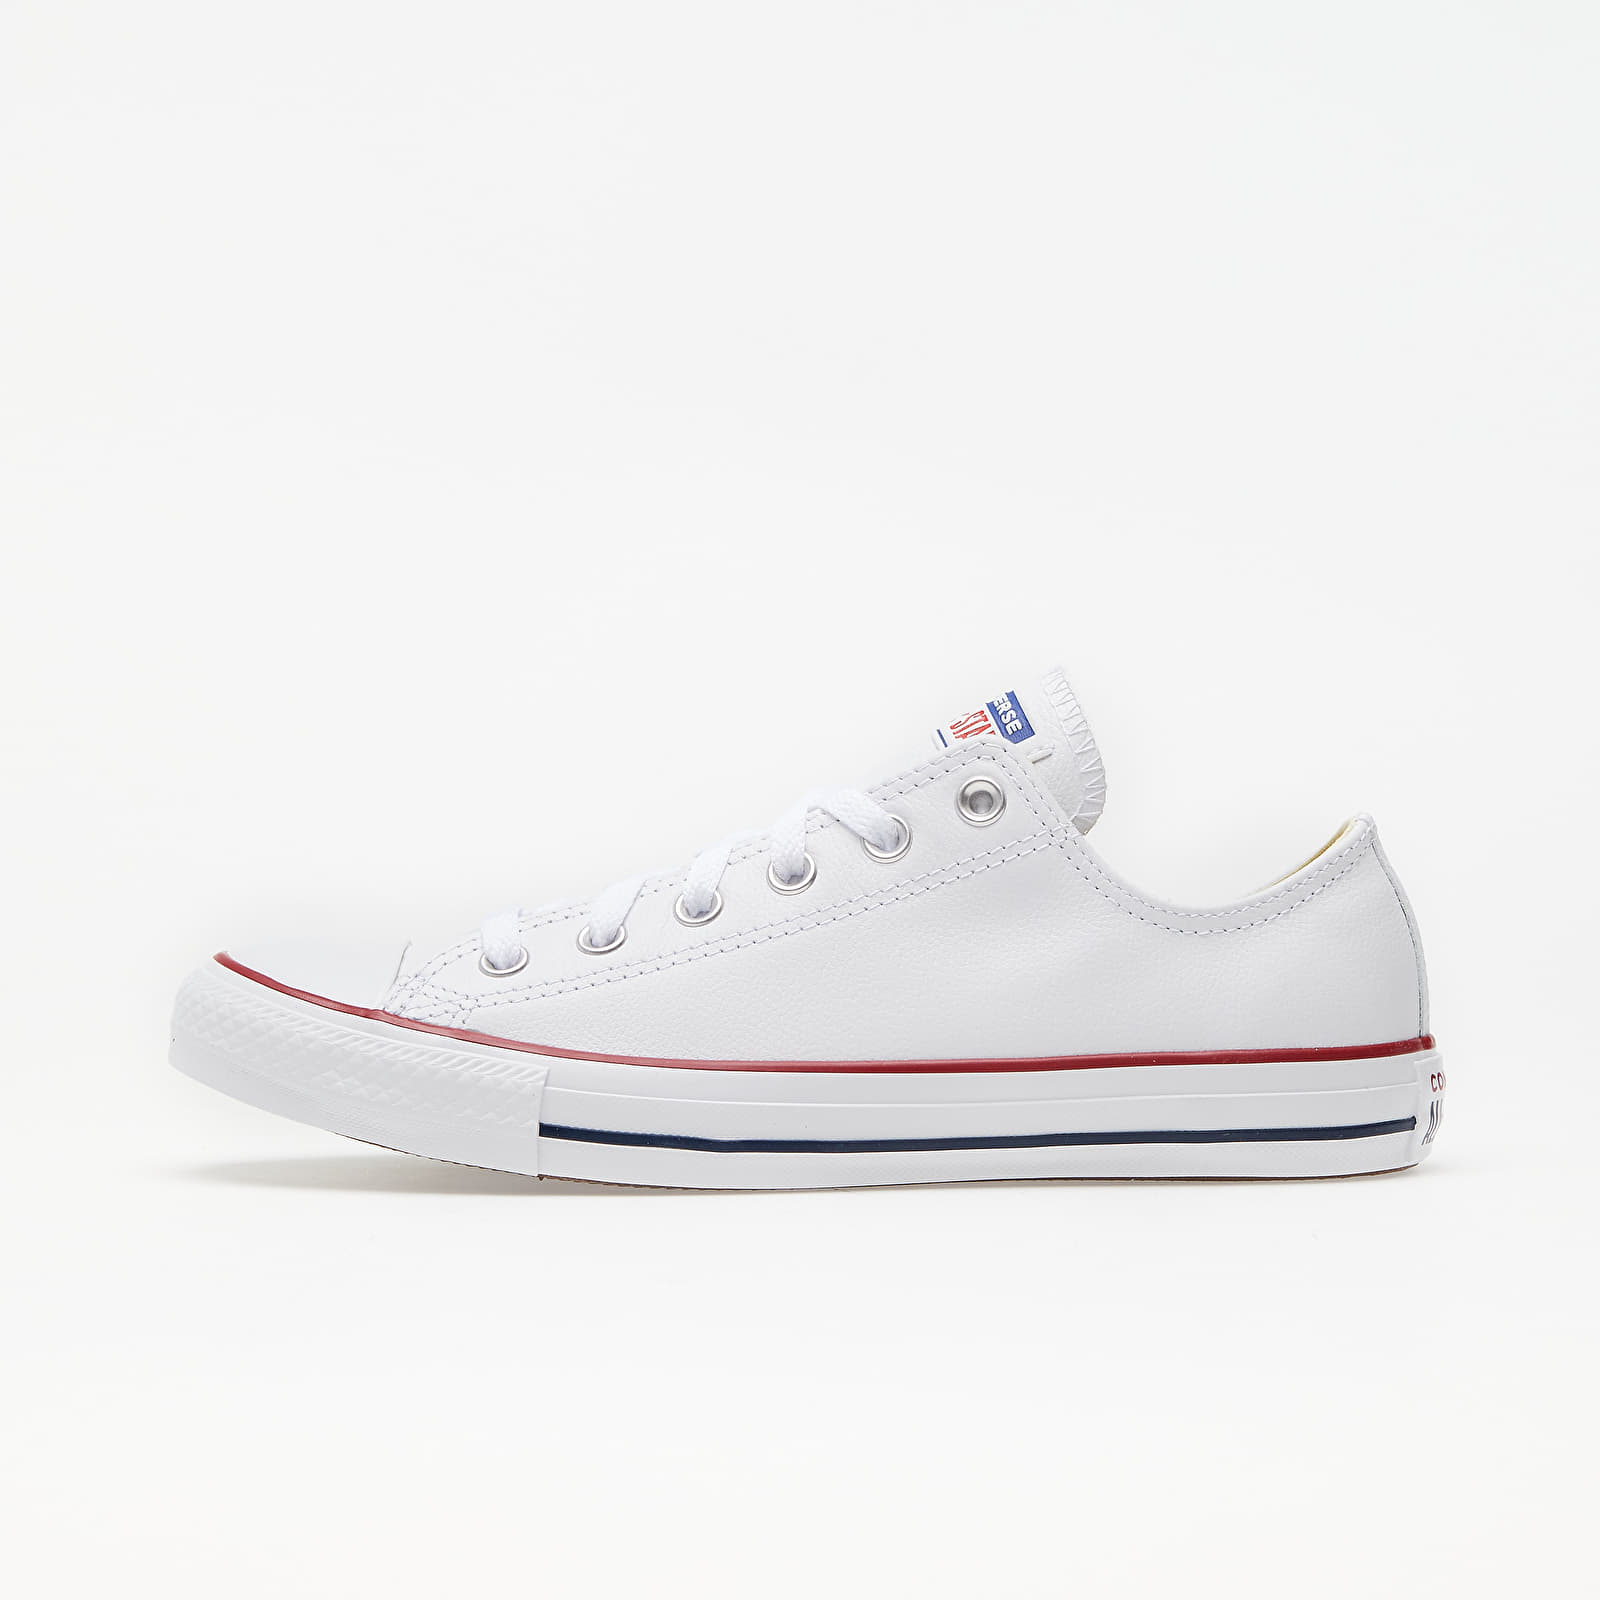 Women's shoes Converse Chuck Taylor All Star OX White